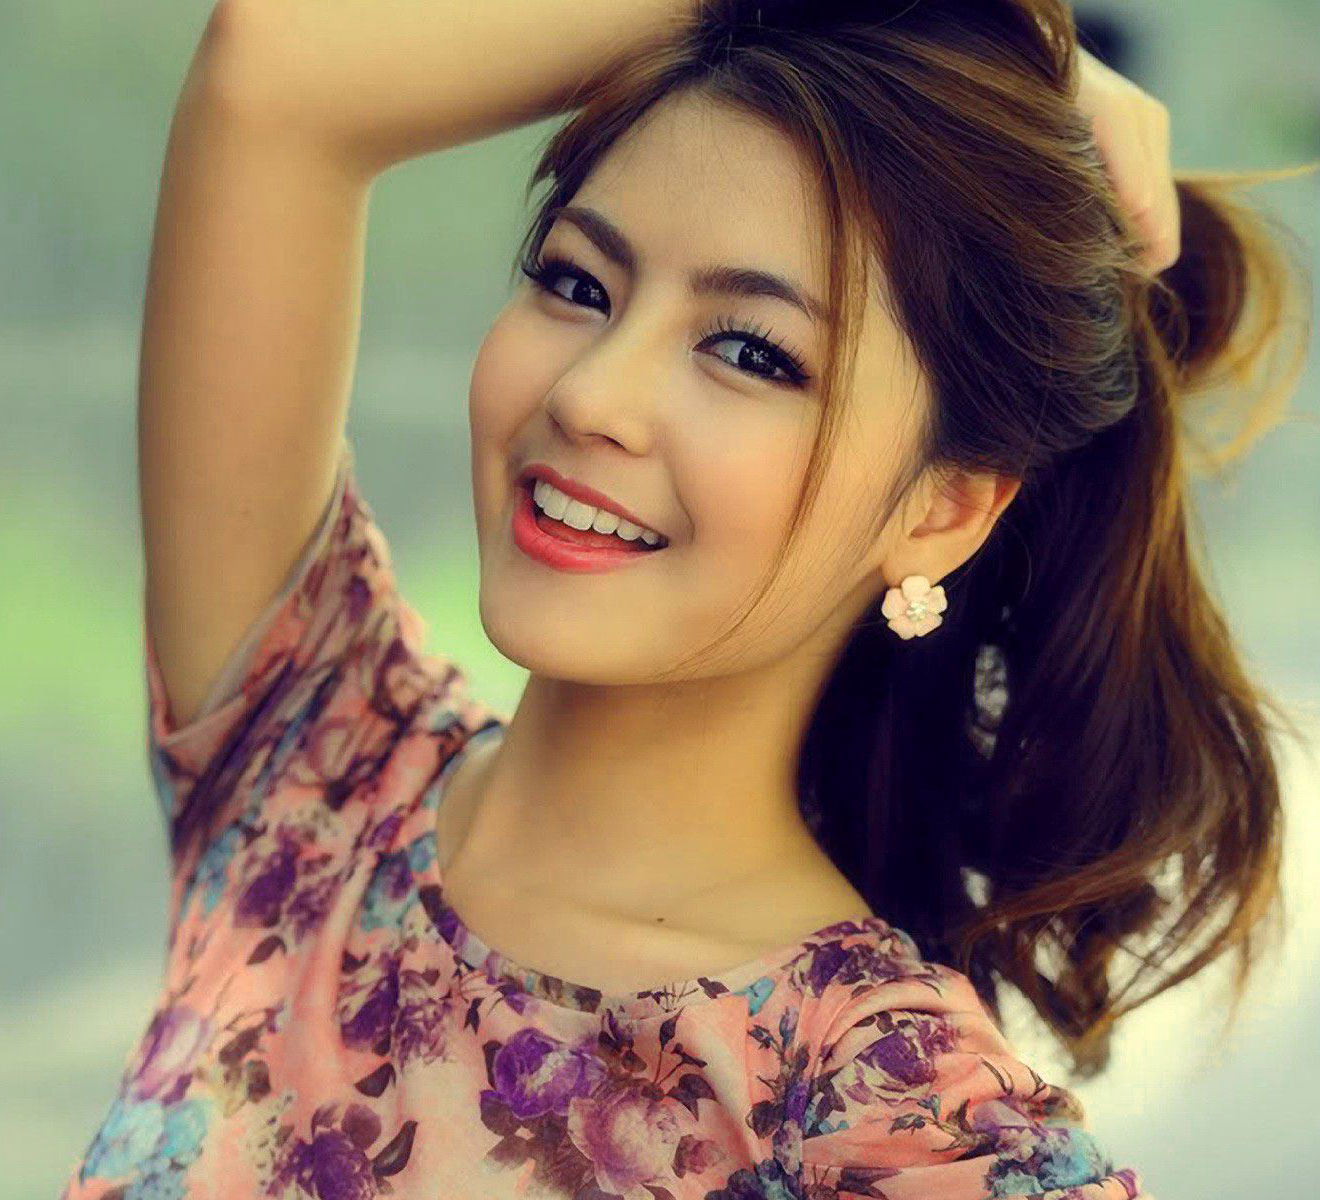 Cute Girls Images